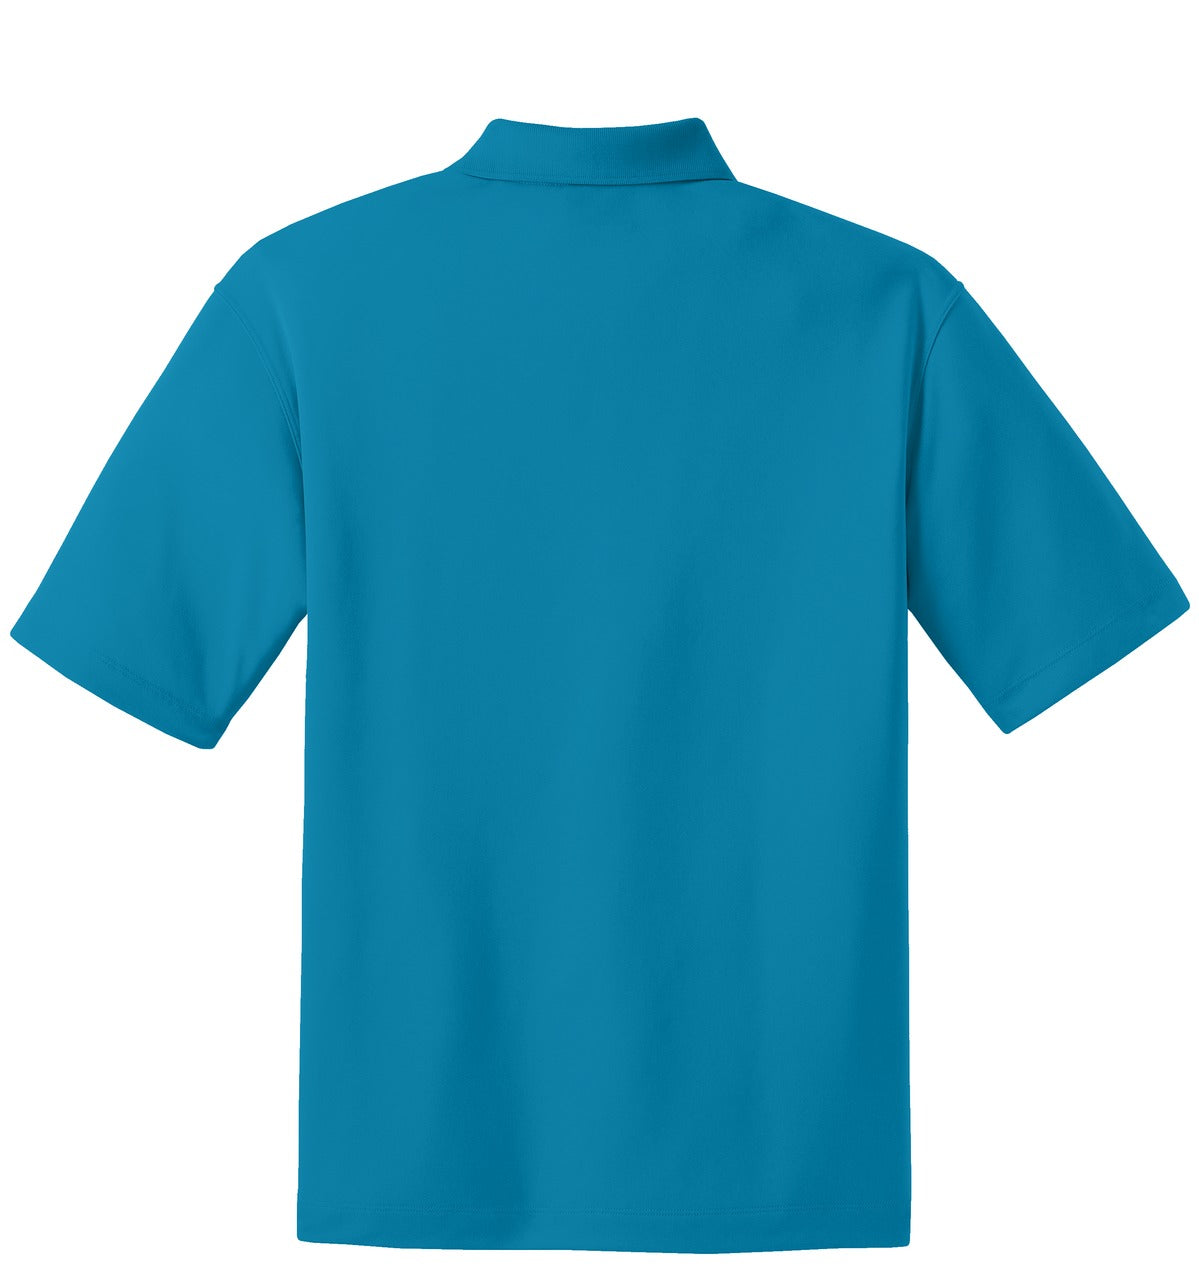 Tidal Blue Nike Tall Dri-FIT Micro Pique Polo.